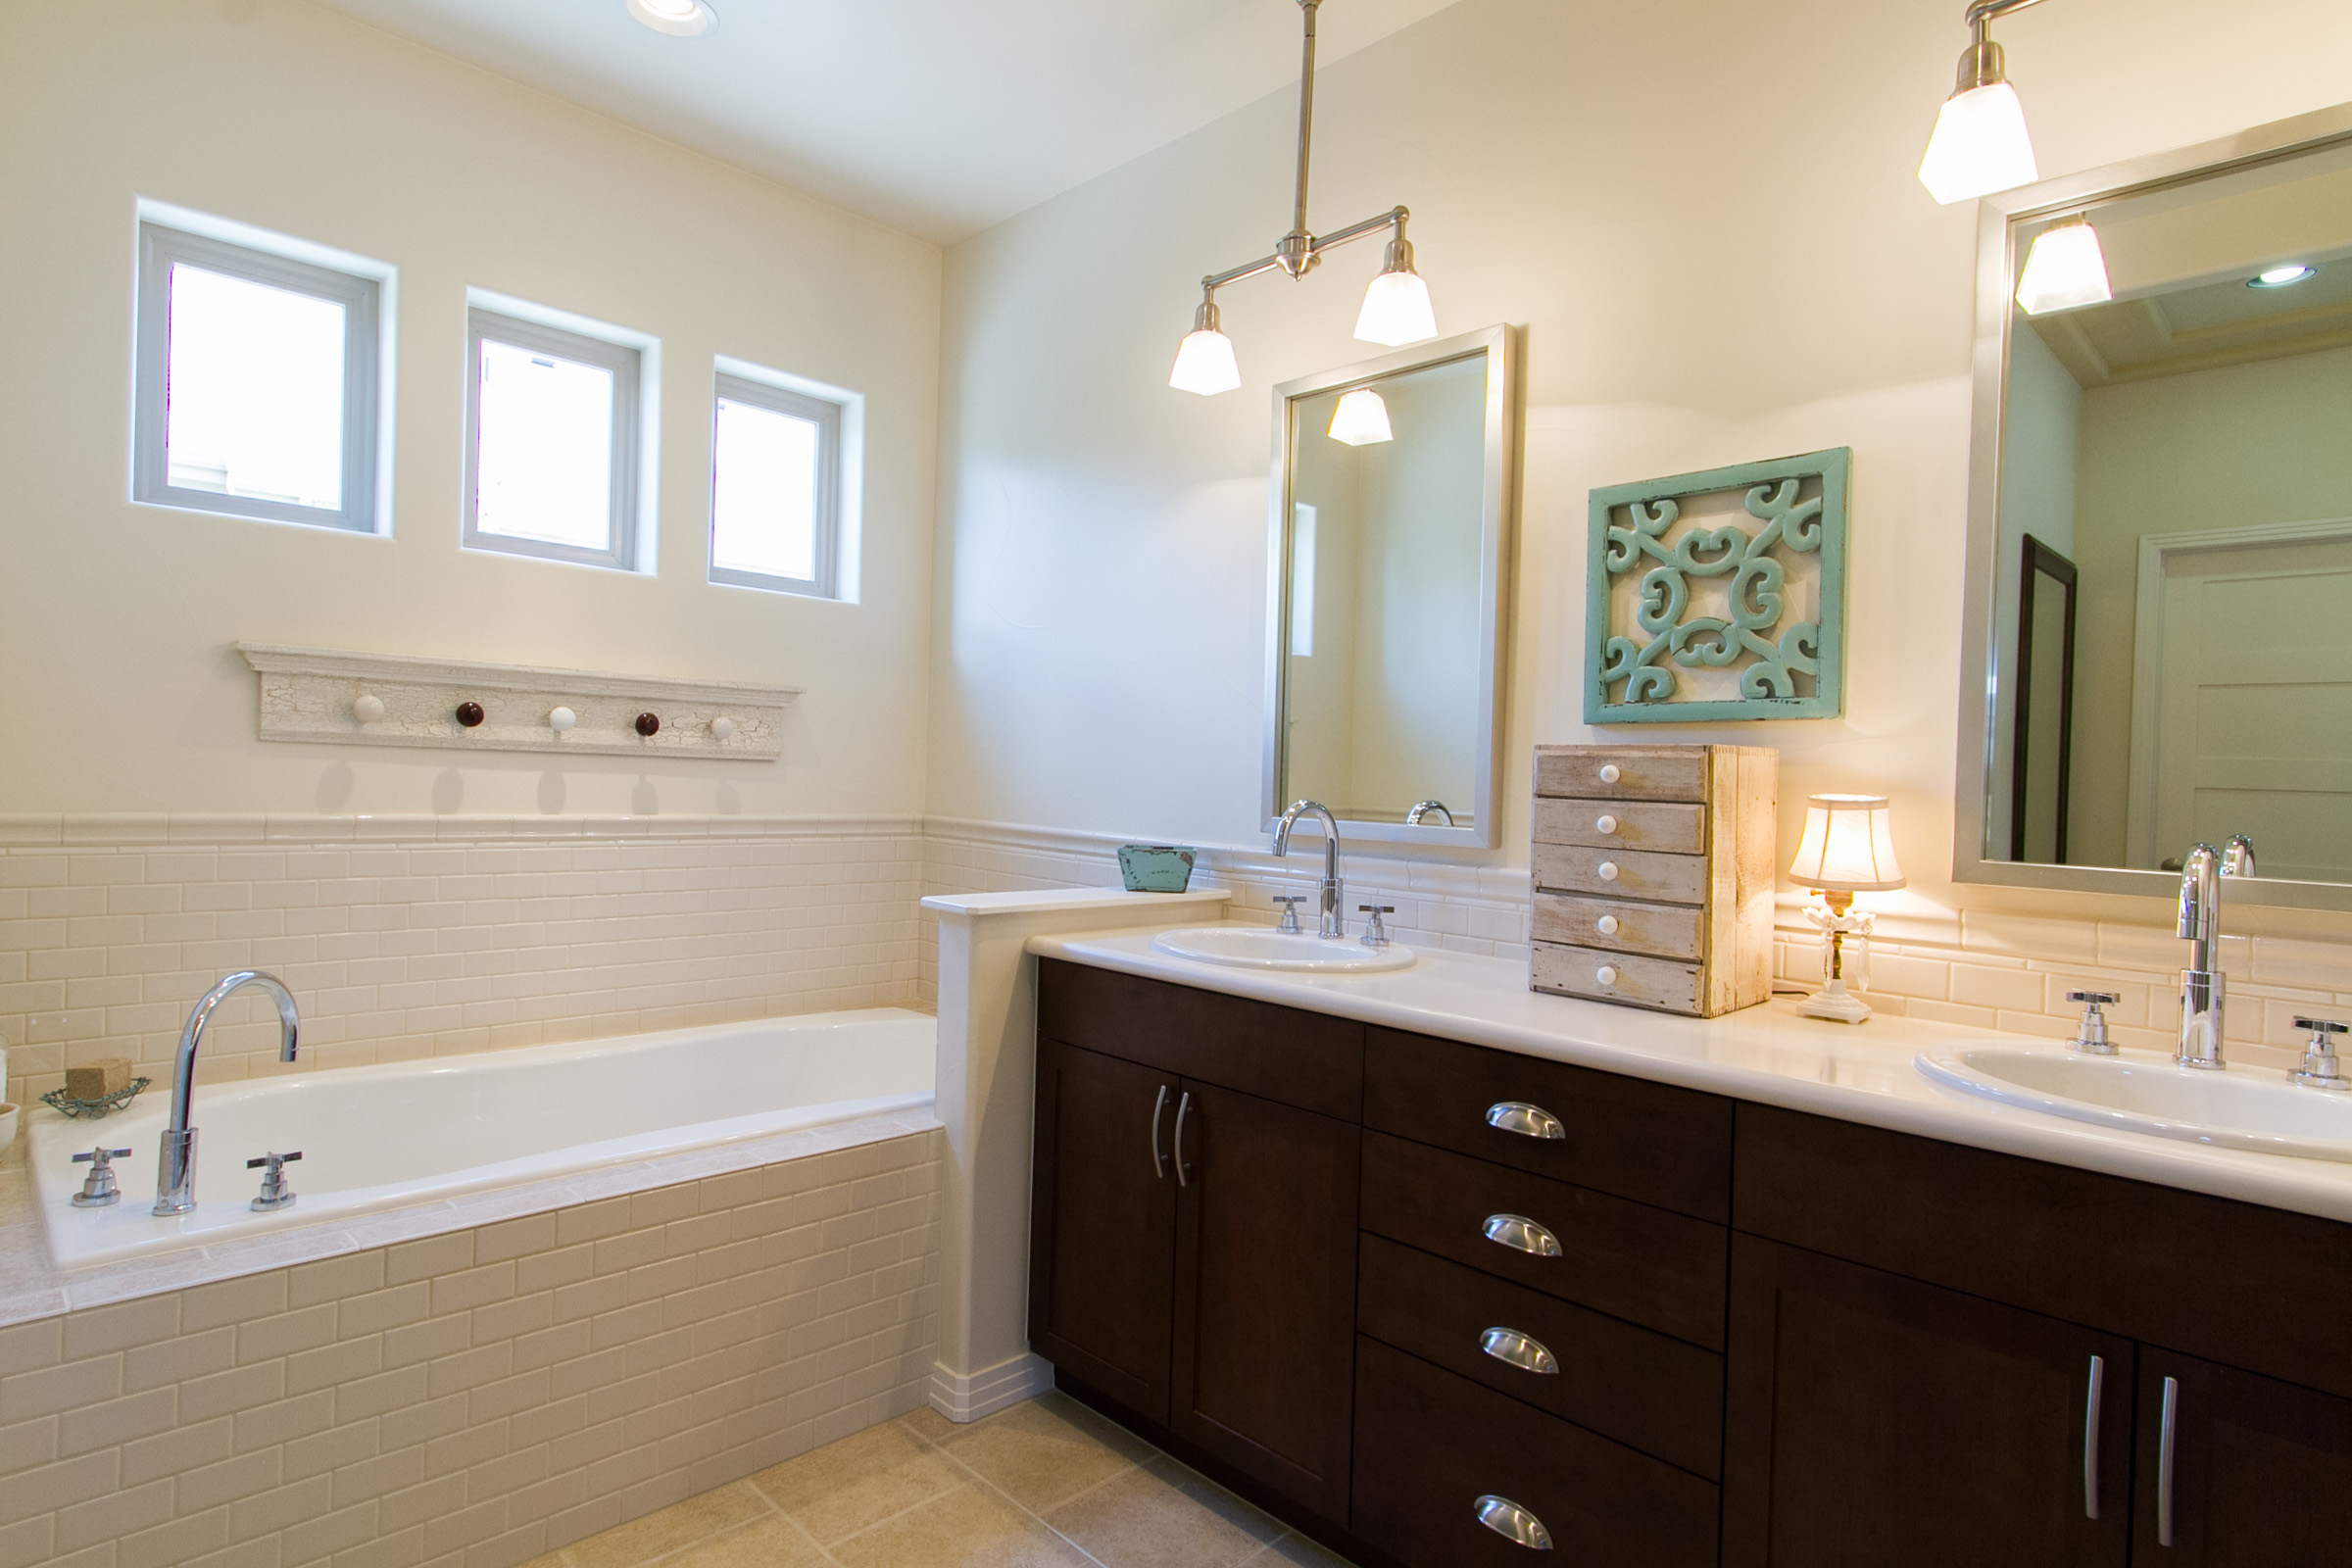 1307018_Master-Bath-Has-Tub-And-Double-Vanity_high.jpg